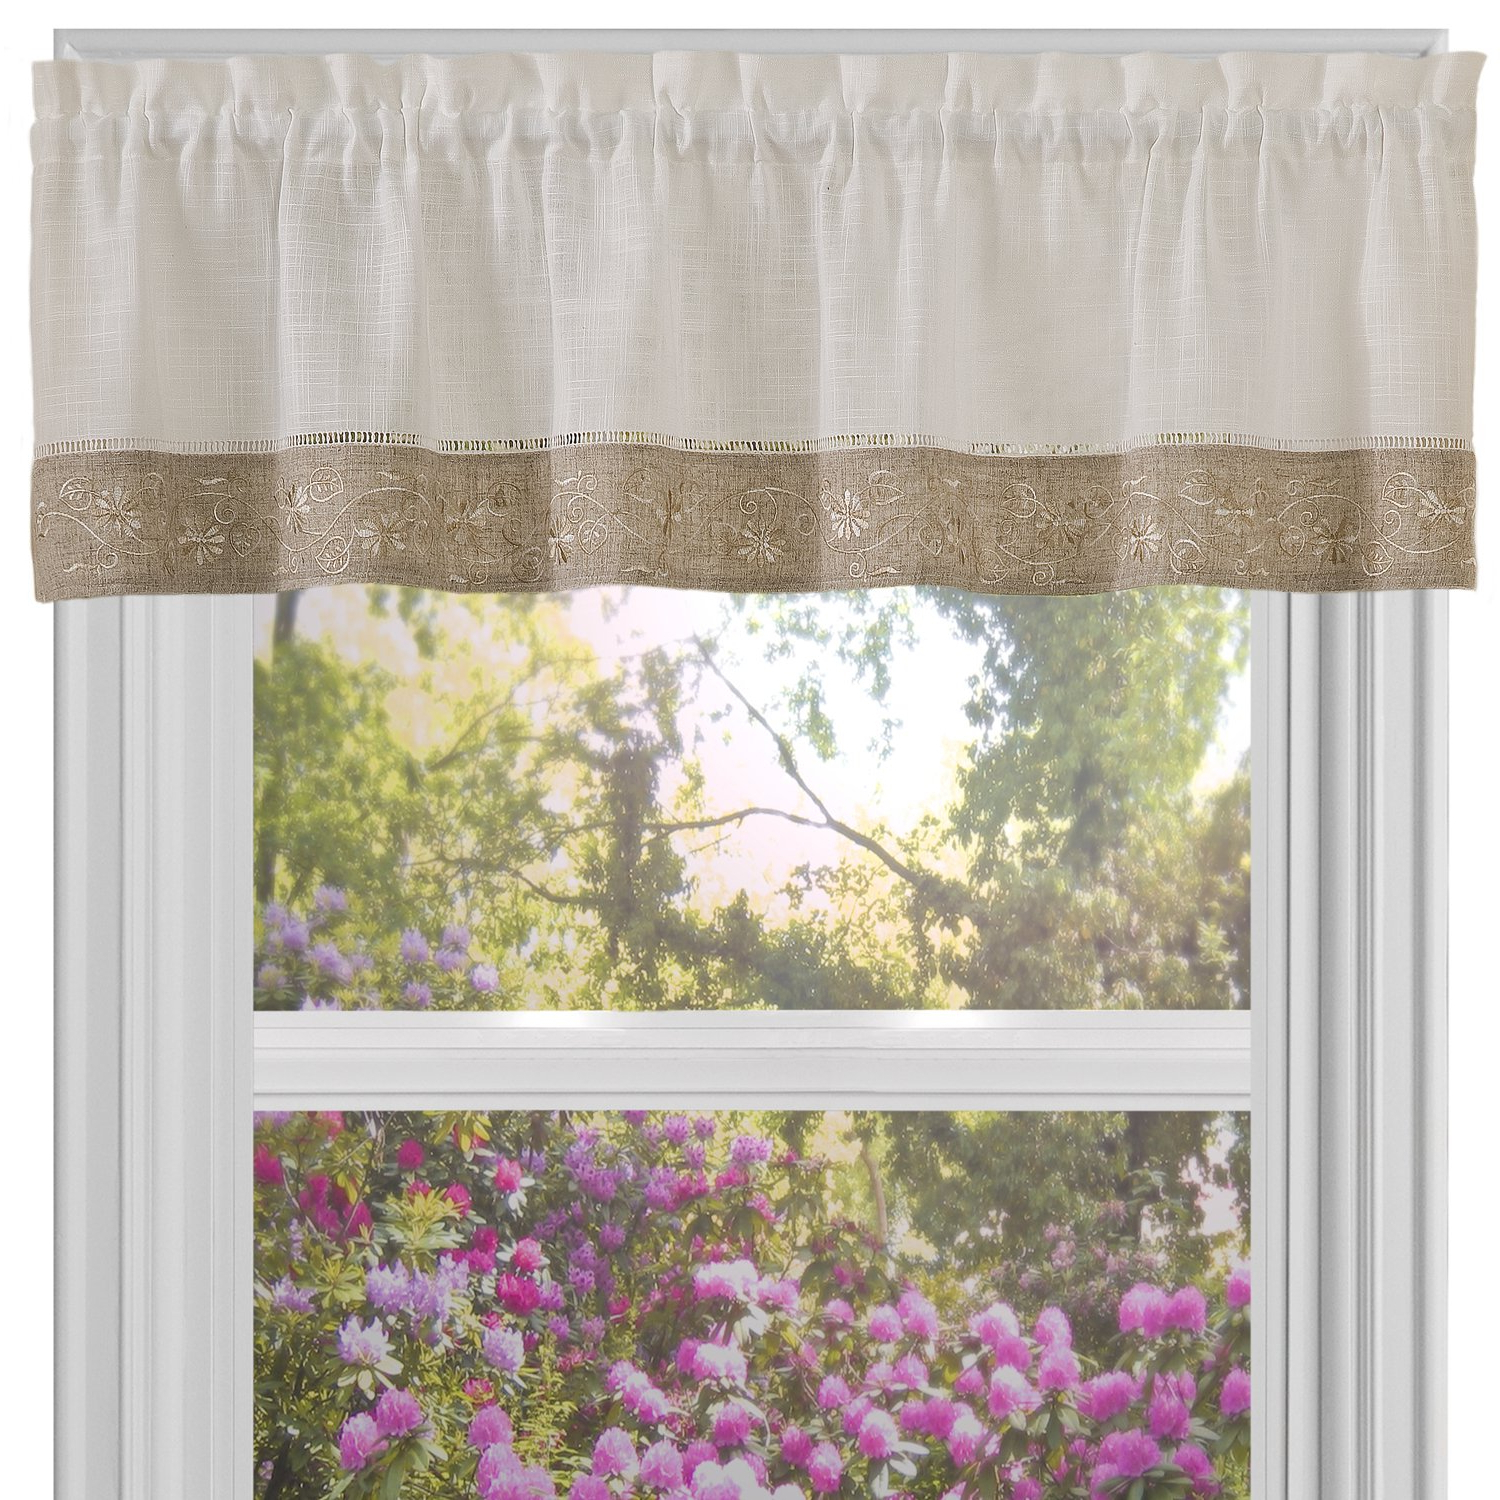 2020 Oakwood Linen Style Decorative Curtain Tier Sets Intended For Amazon: Sweet Home Collection Oakwood Linen Design (View 7 of 20)